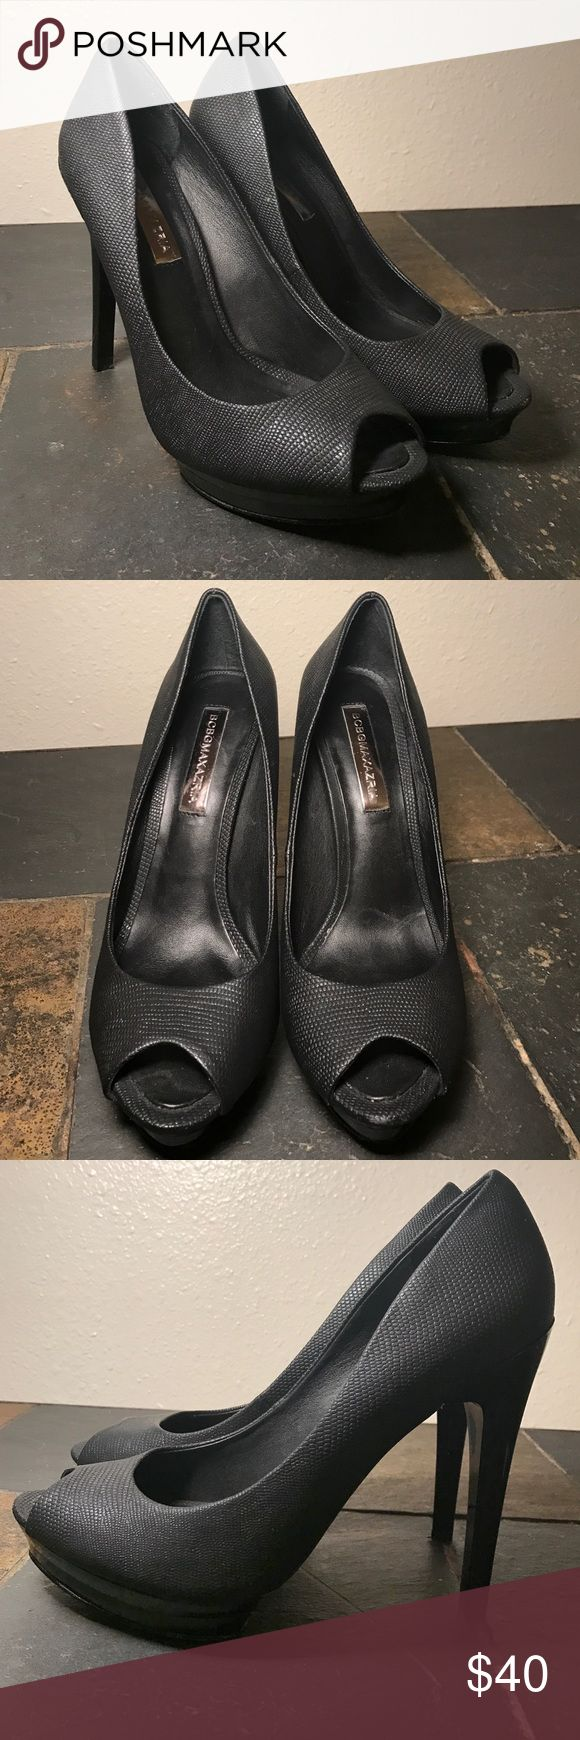 """BCBGMaxAzria Vero Cuoio Black Stilettos Like new. In perfect condition, only worn once. Very minor knock on back of one heel. Size 7B.  Heel measures 5"""". BCBGMaxAzria Shoes Heels"""